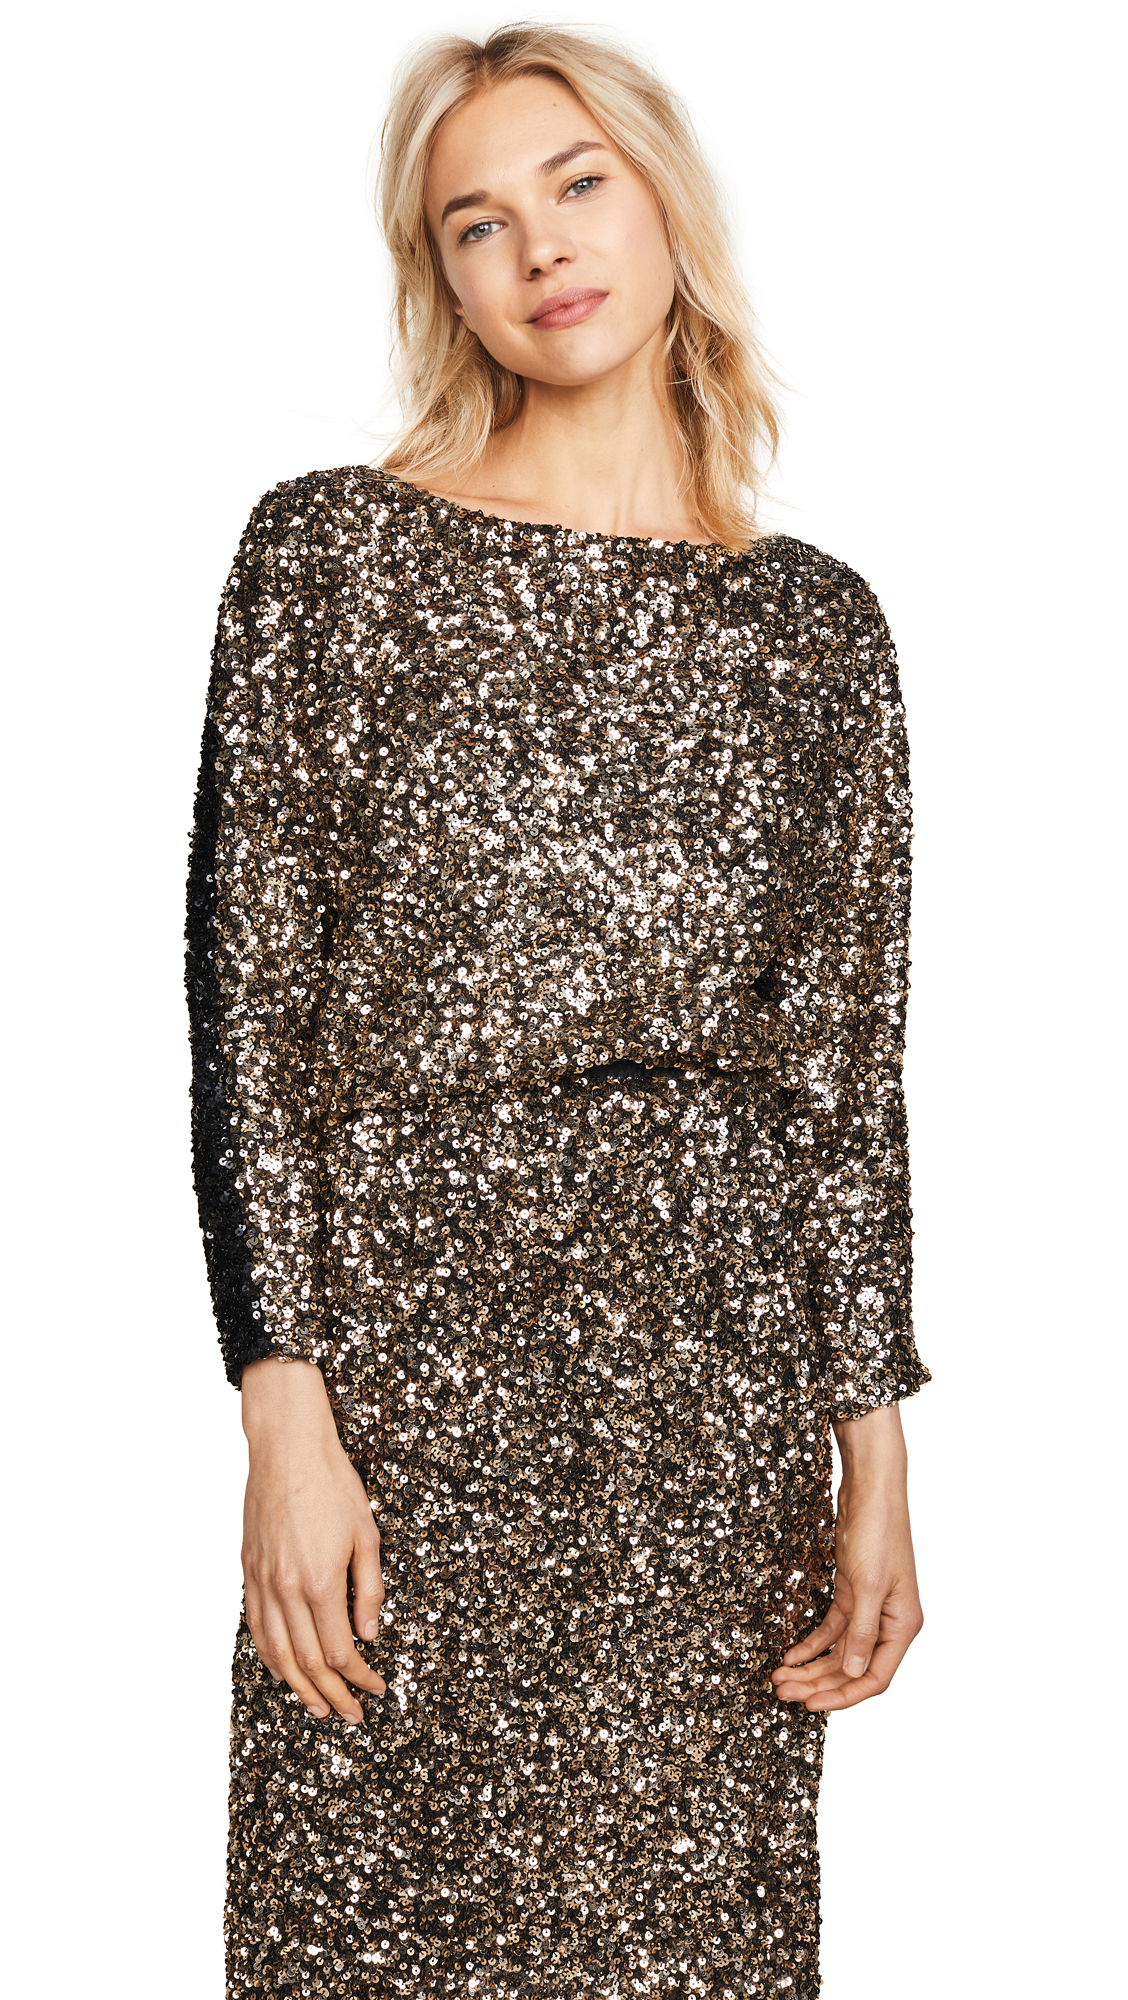 LOYD/FORD Sequin Sweater in Black/Gold